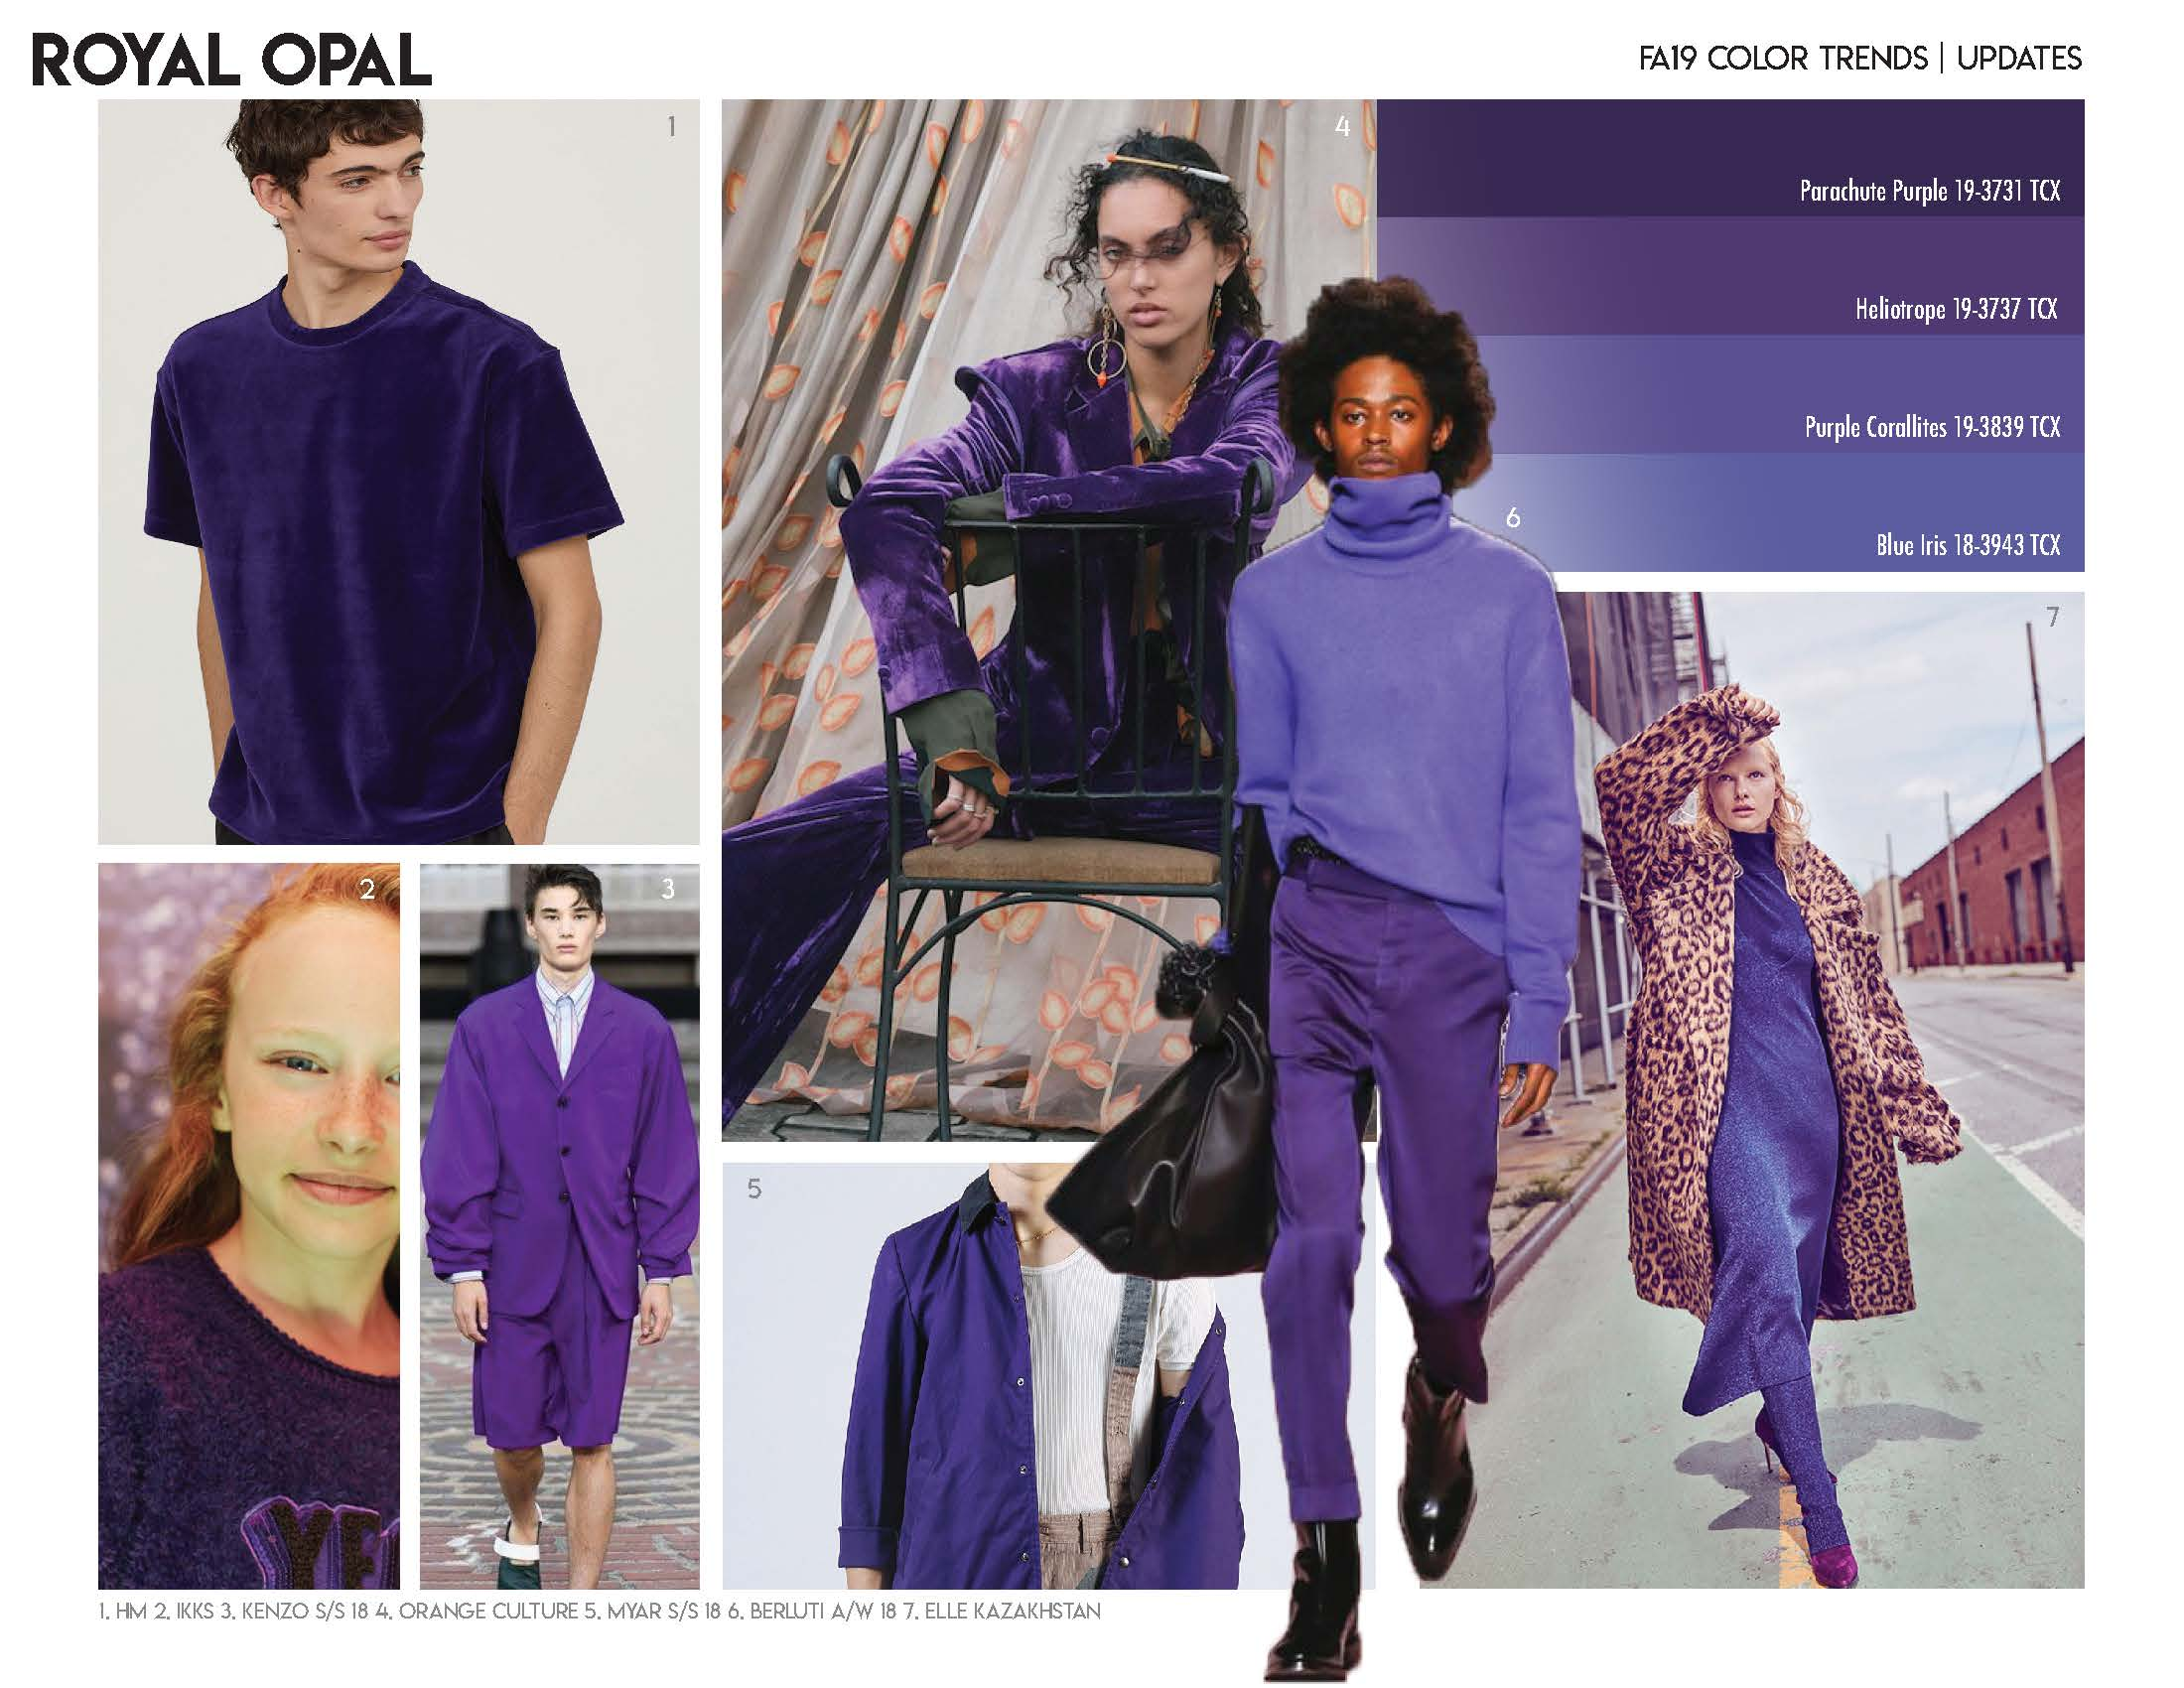 FA19 Color Trends_Page_05.jpg